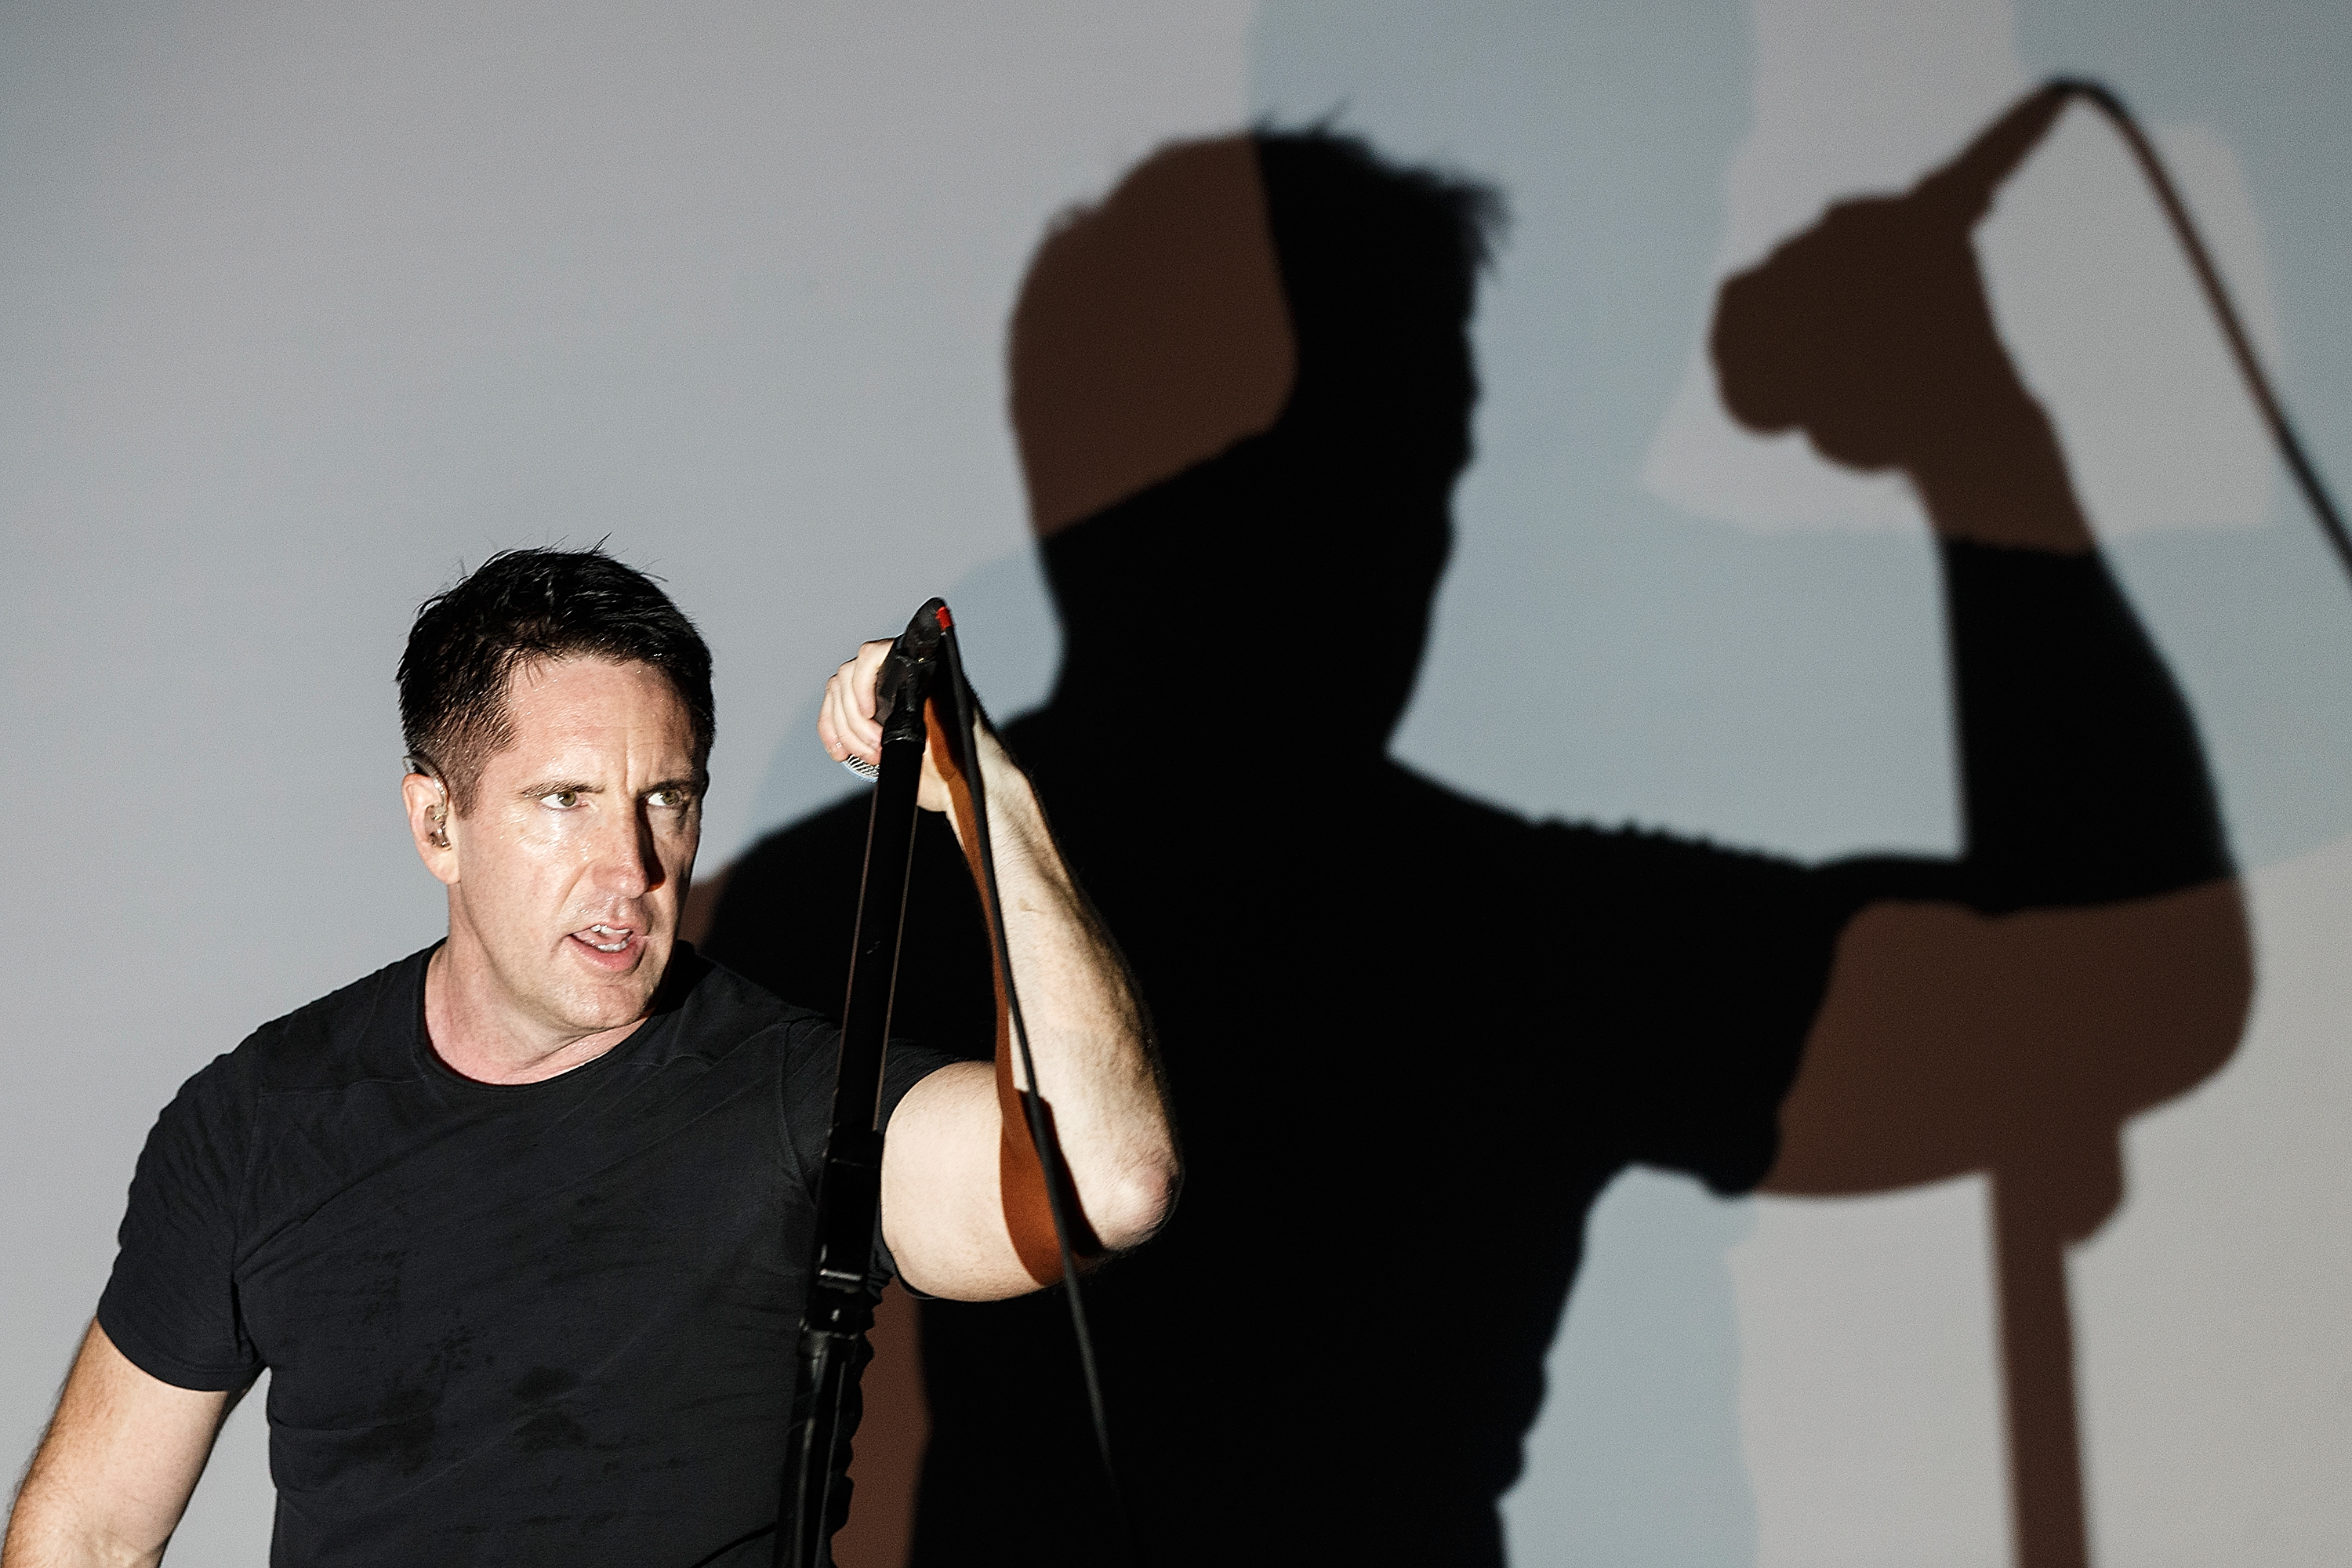 PEMBERTON, BC - JULY 18:  Singer Trent Reznor of Nine Inch Nails performs during Day 1 of Pemberton Music and Arts Festival on July 18, 2014 in Pemberton, Canada.  (Photo by Andrew Chin/FilmMagic)